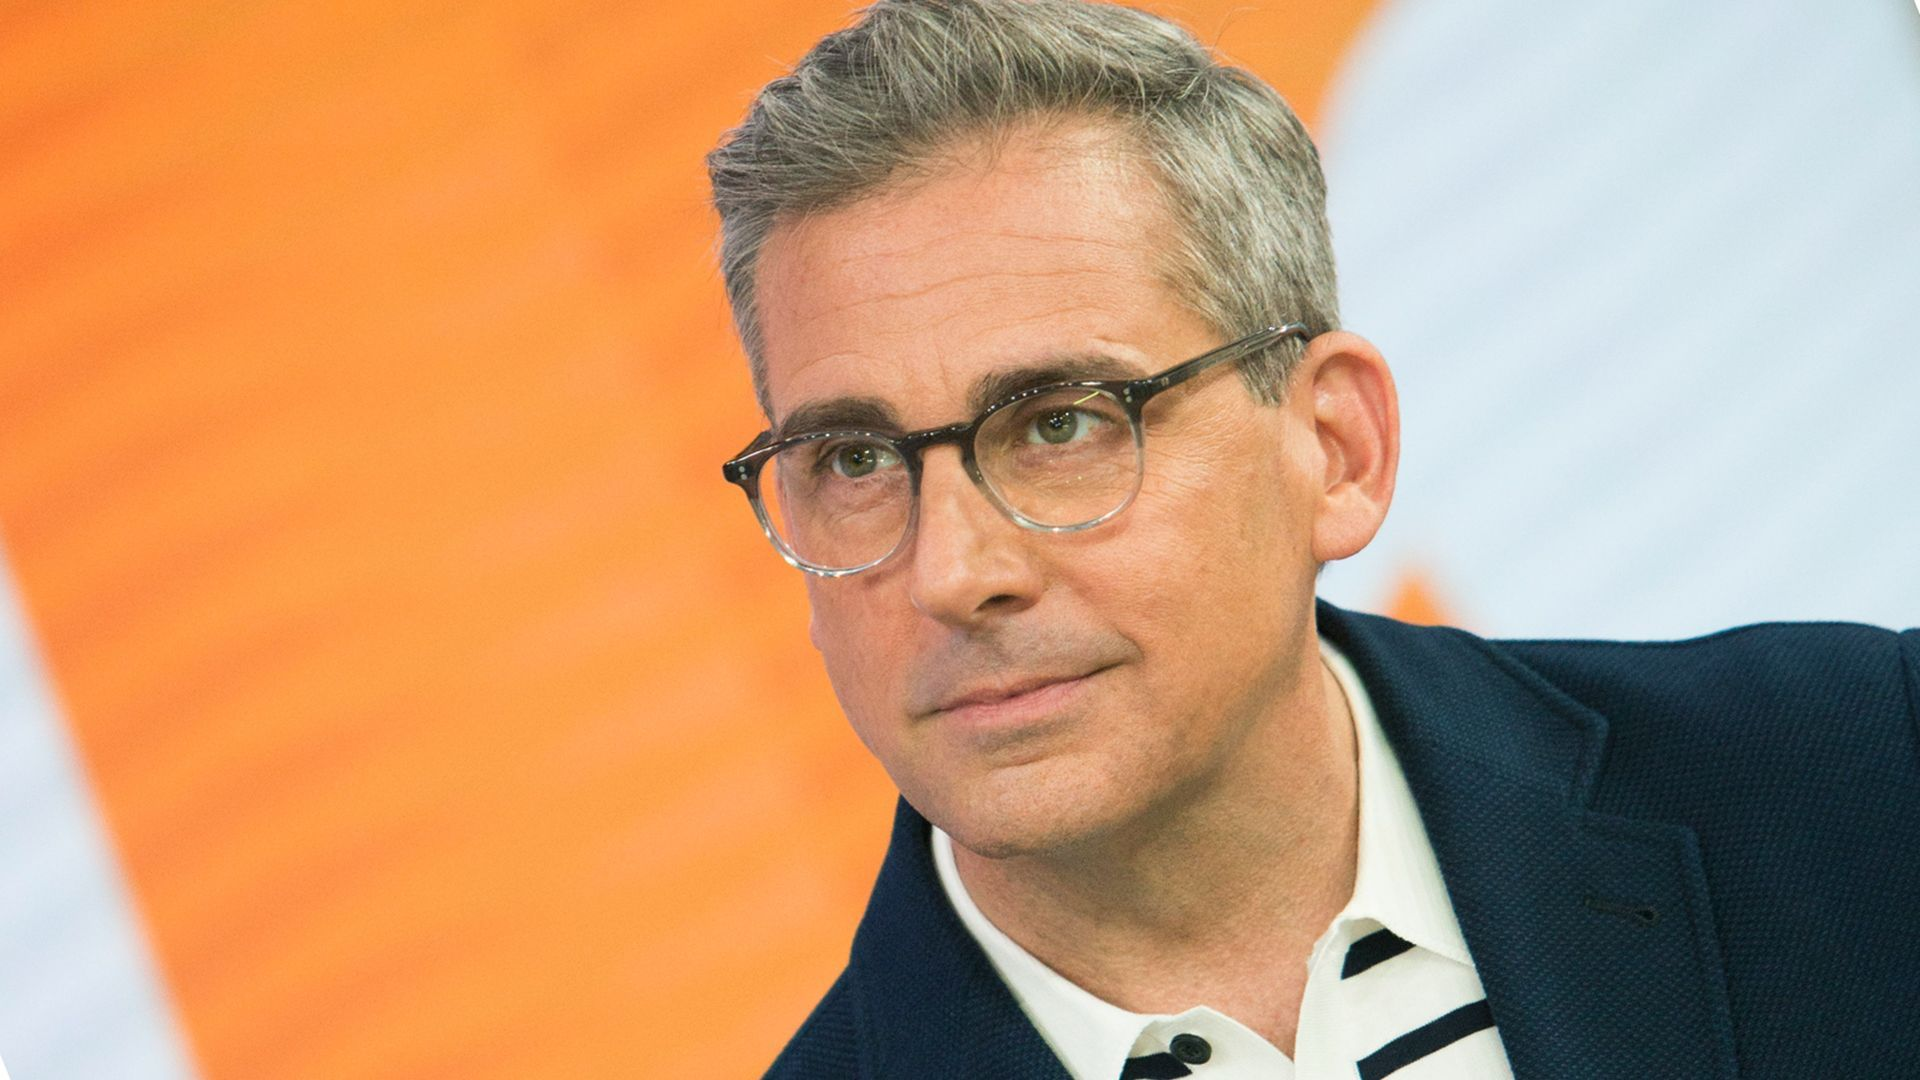 Steve Carell 75+ Cool New Pictures And Handsome HD Wallpapers